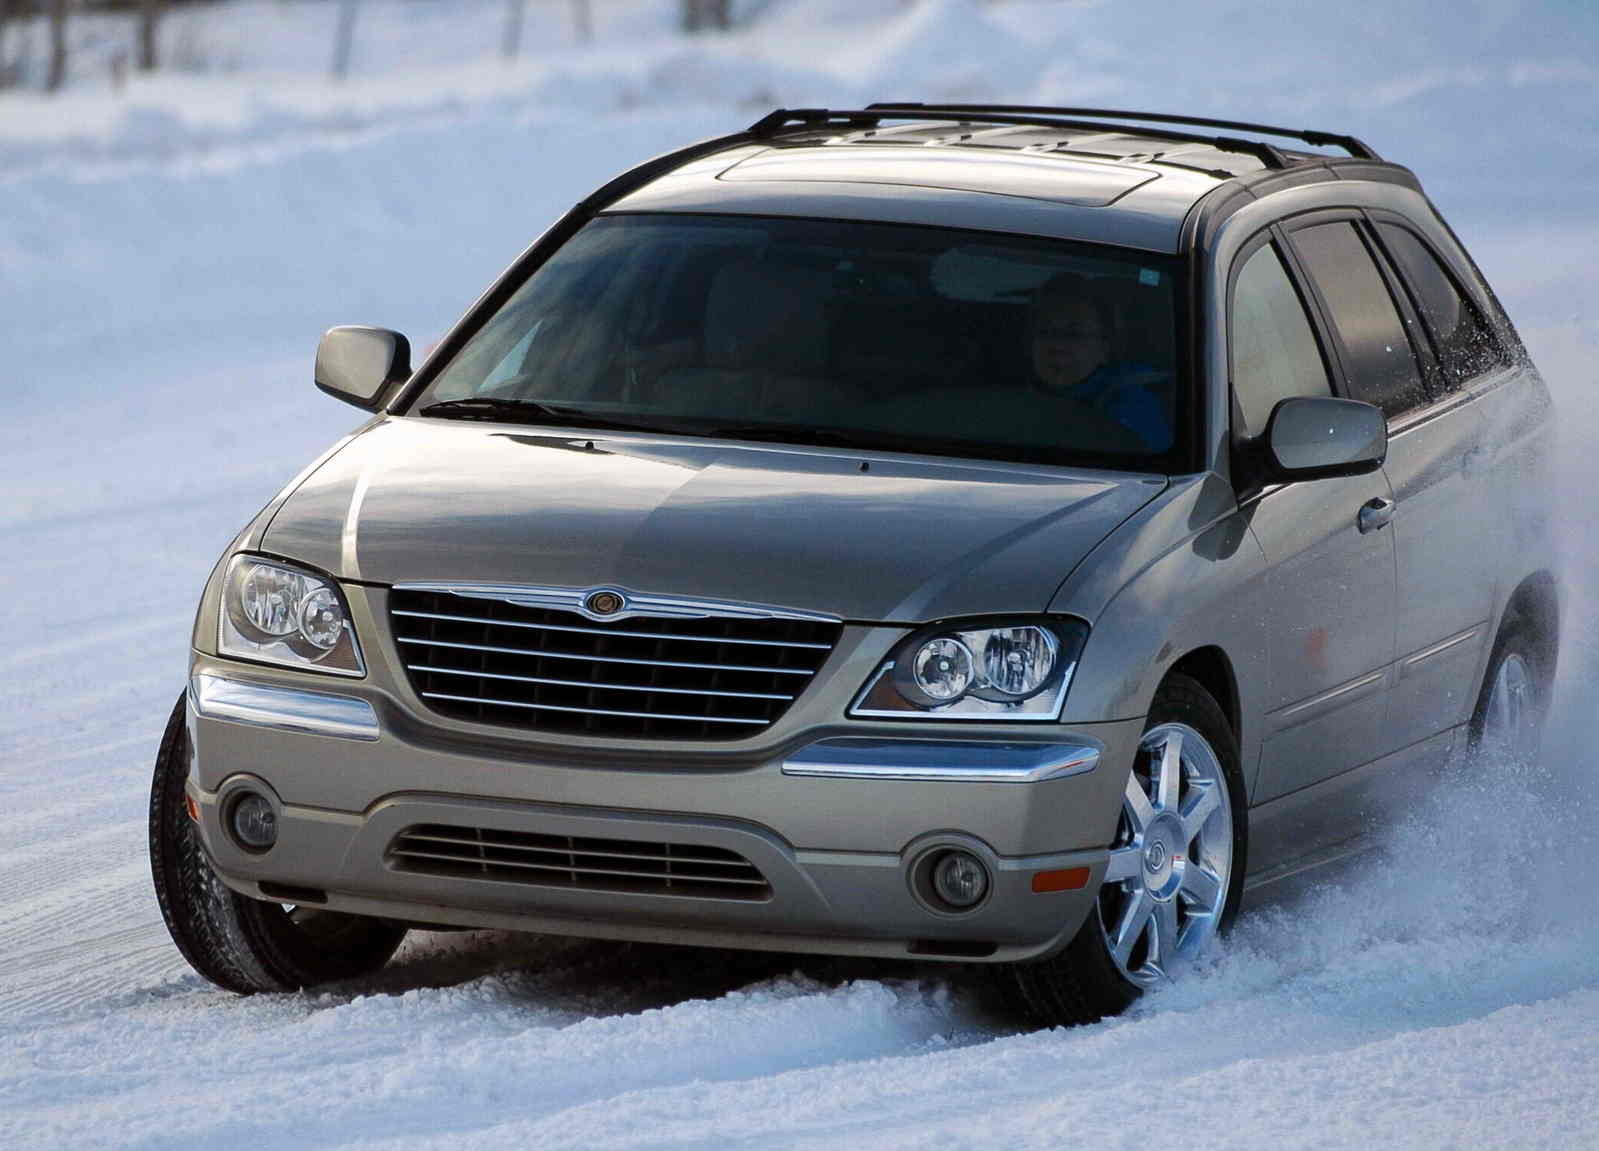 2006 chrysler pacifica picture 45479 car review top speed. Cars Review. Best American Auto & Cars Review